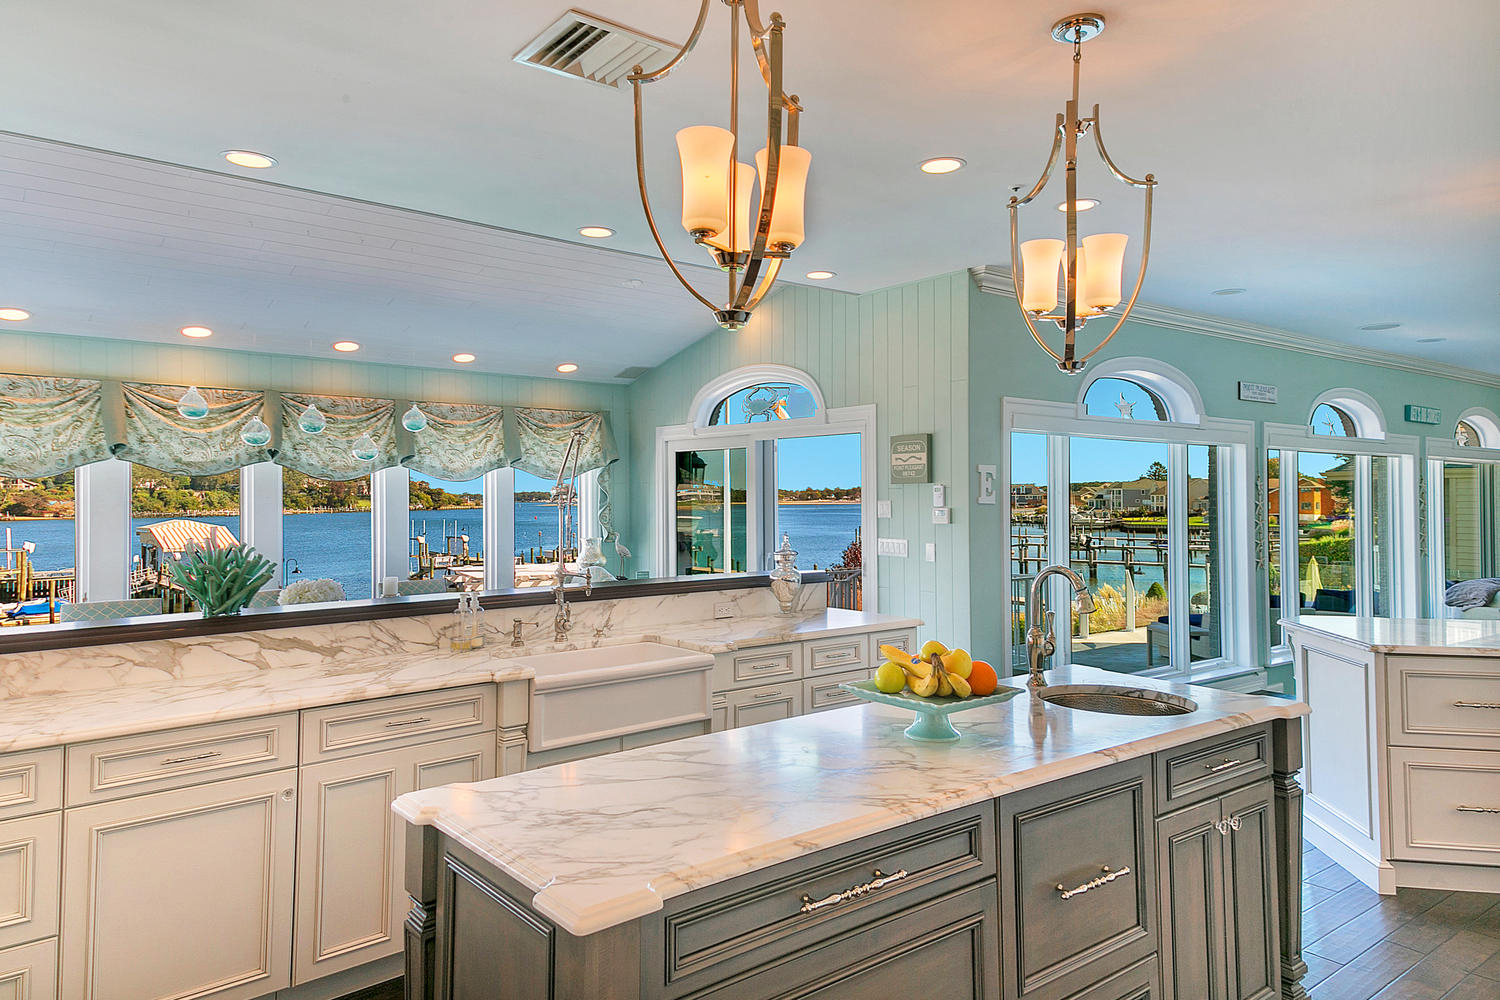 Charming Custom Kitchens, Bathrooms And More At Design Line Kitchens In Sea Girt, NJ